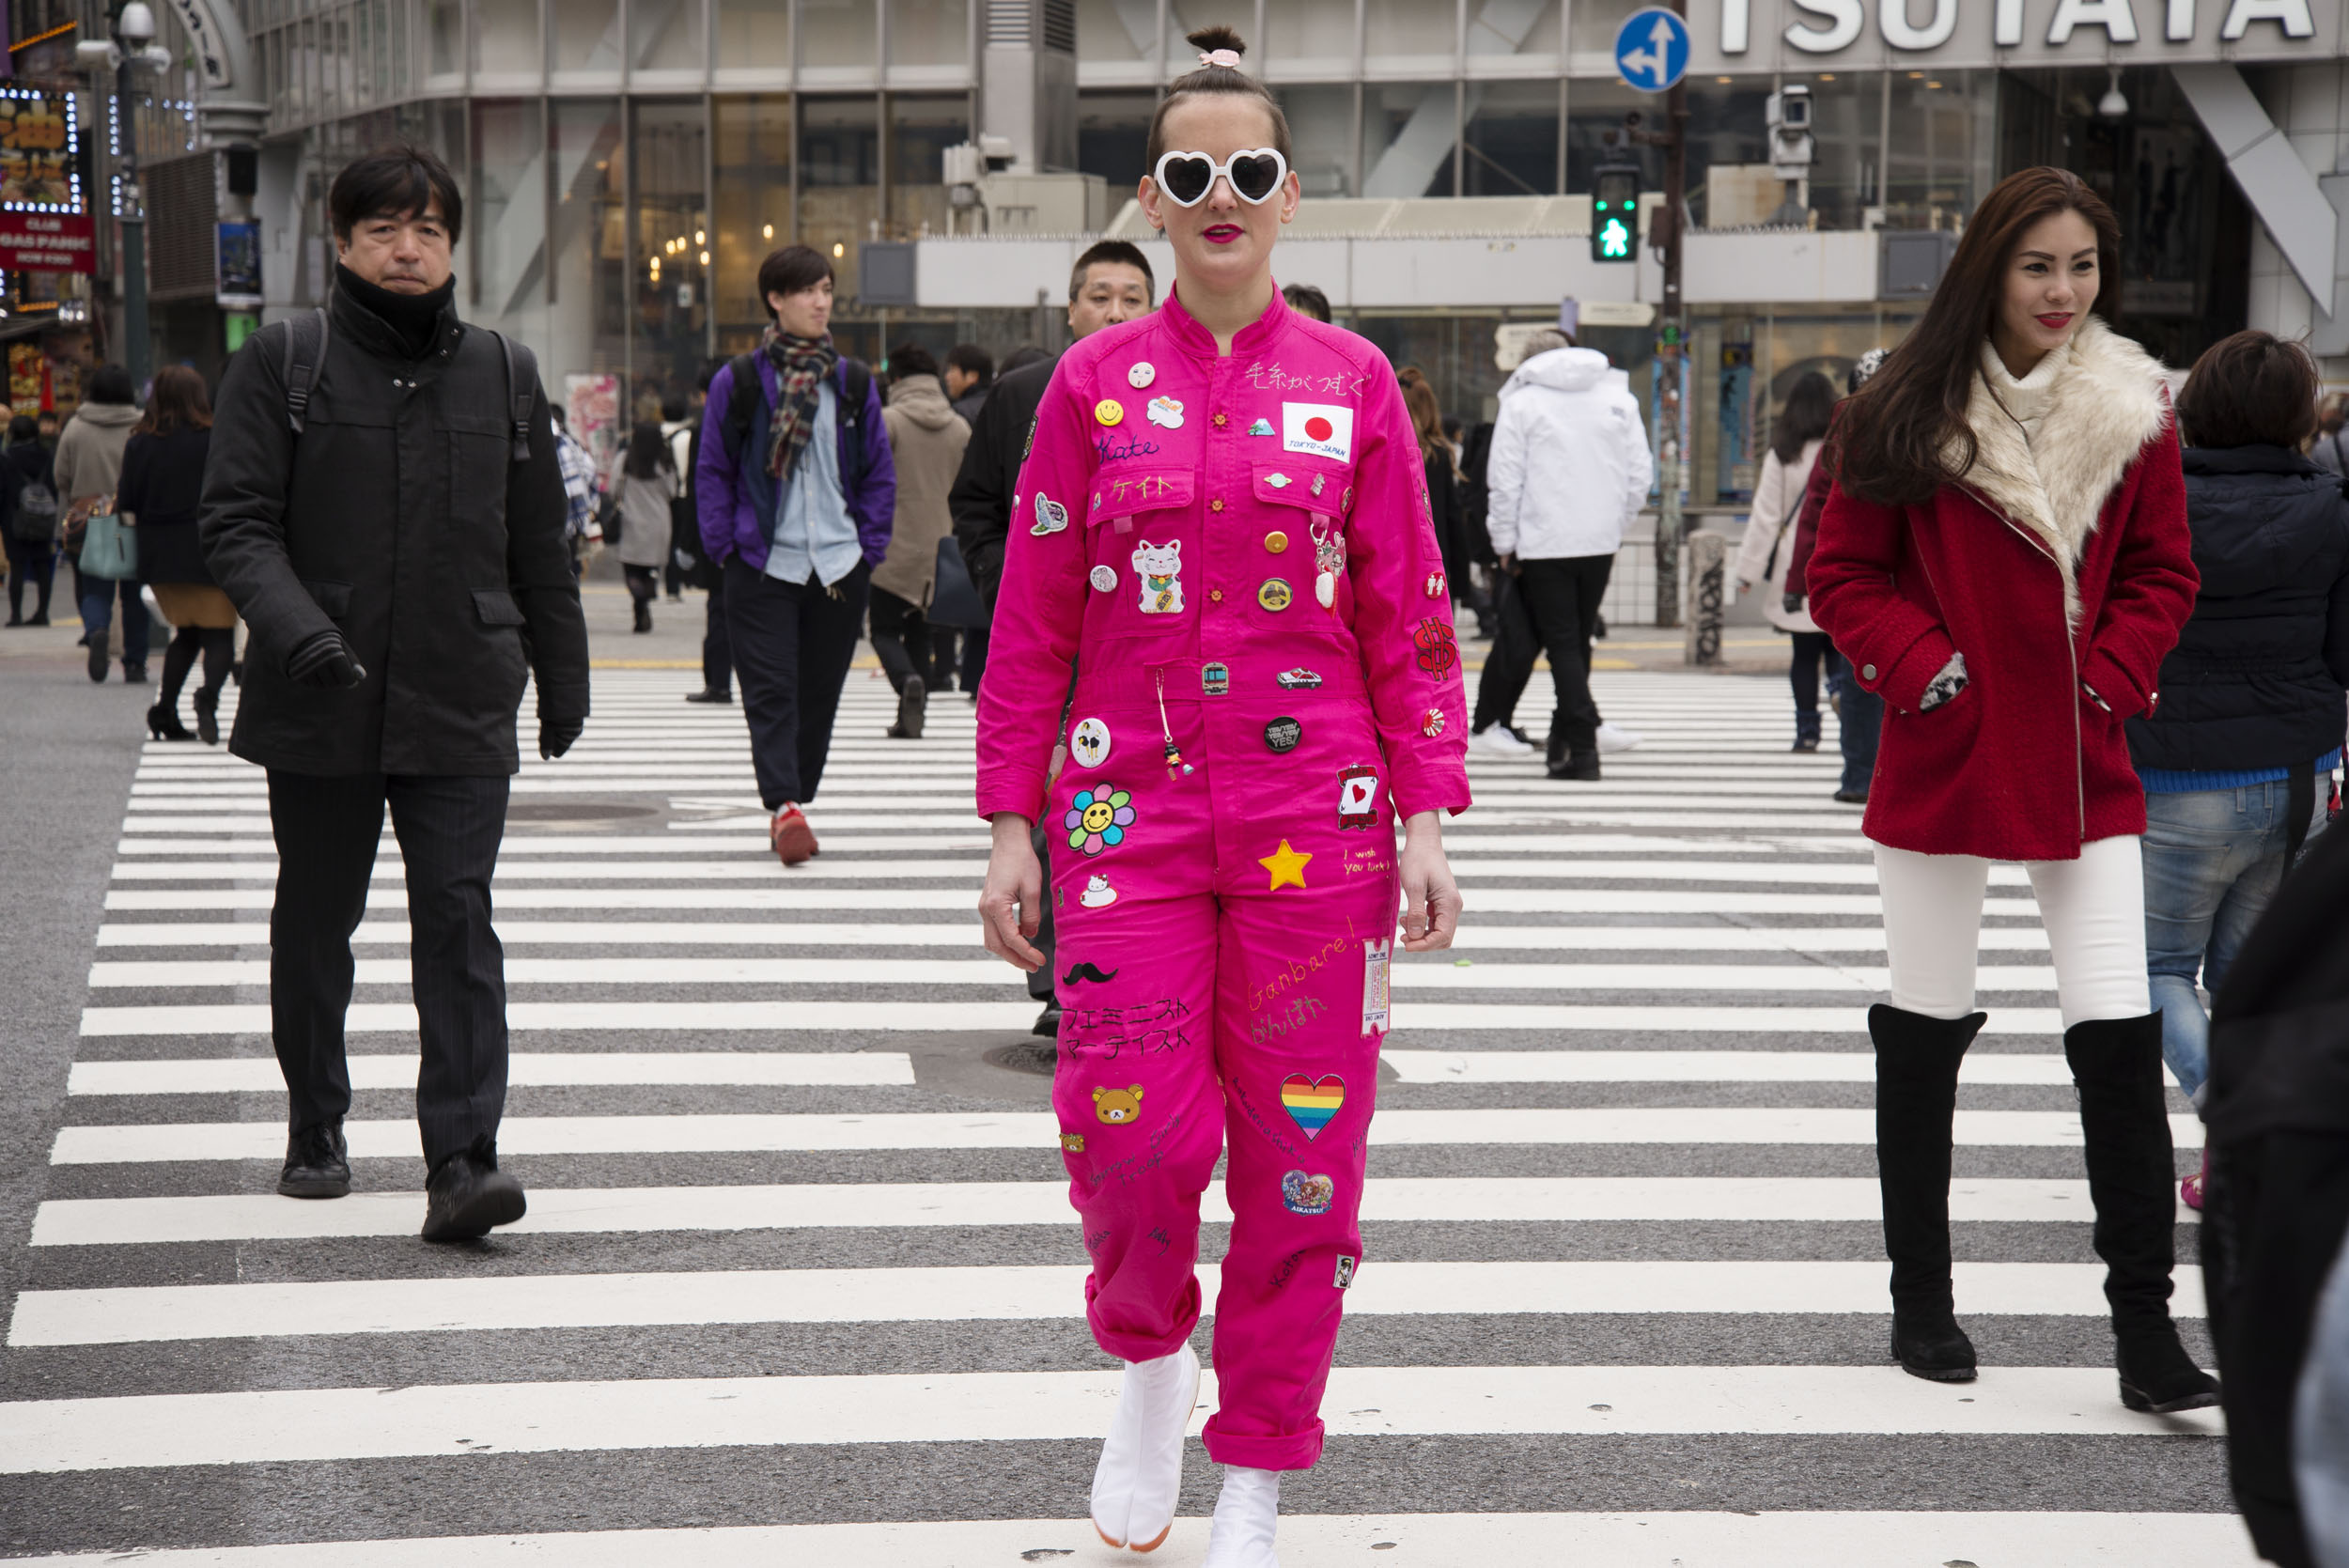 Kate Just, Feminist Fan in Japan - Suited for Action #1 2016, Type C Digital Print